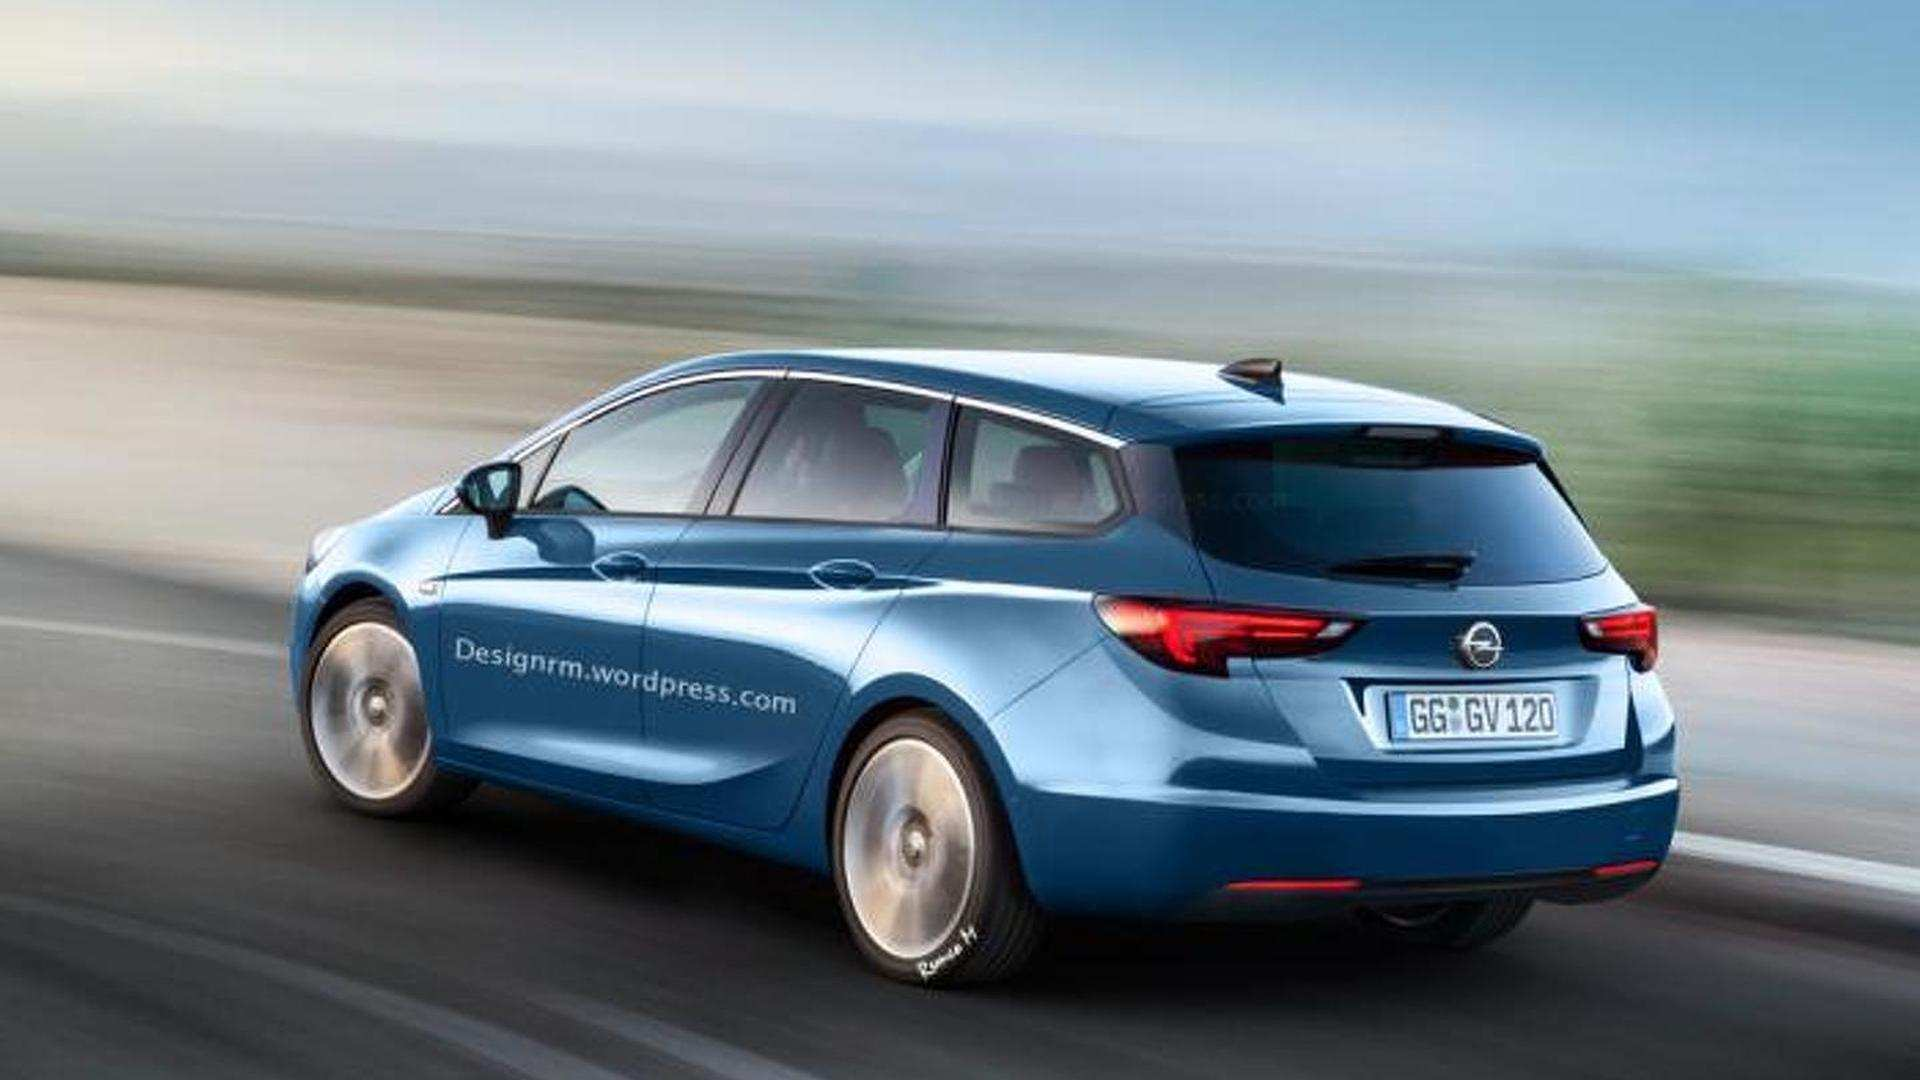 17 New 2019 Opel Astra Sedan Exterior and Interior for 2019 Opel Astra Sedan